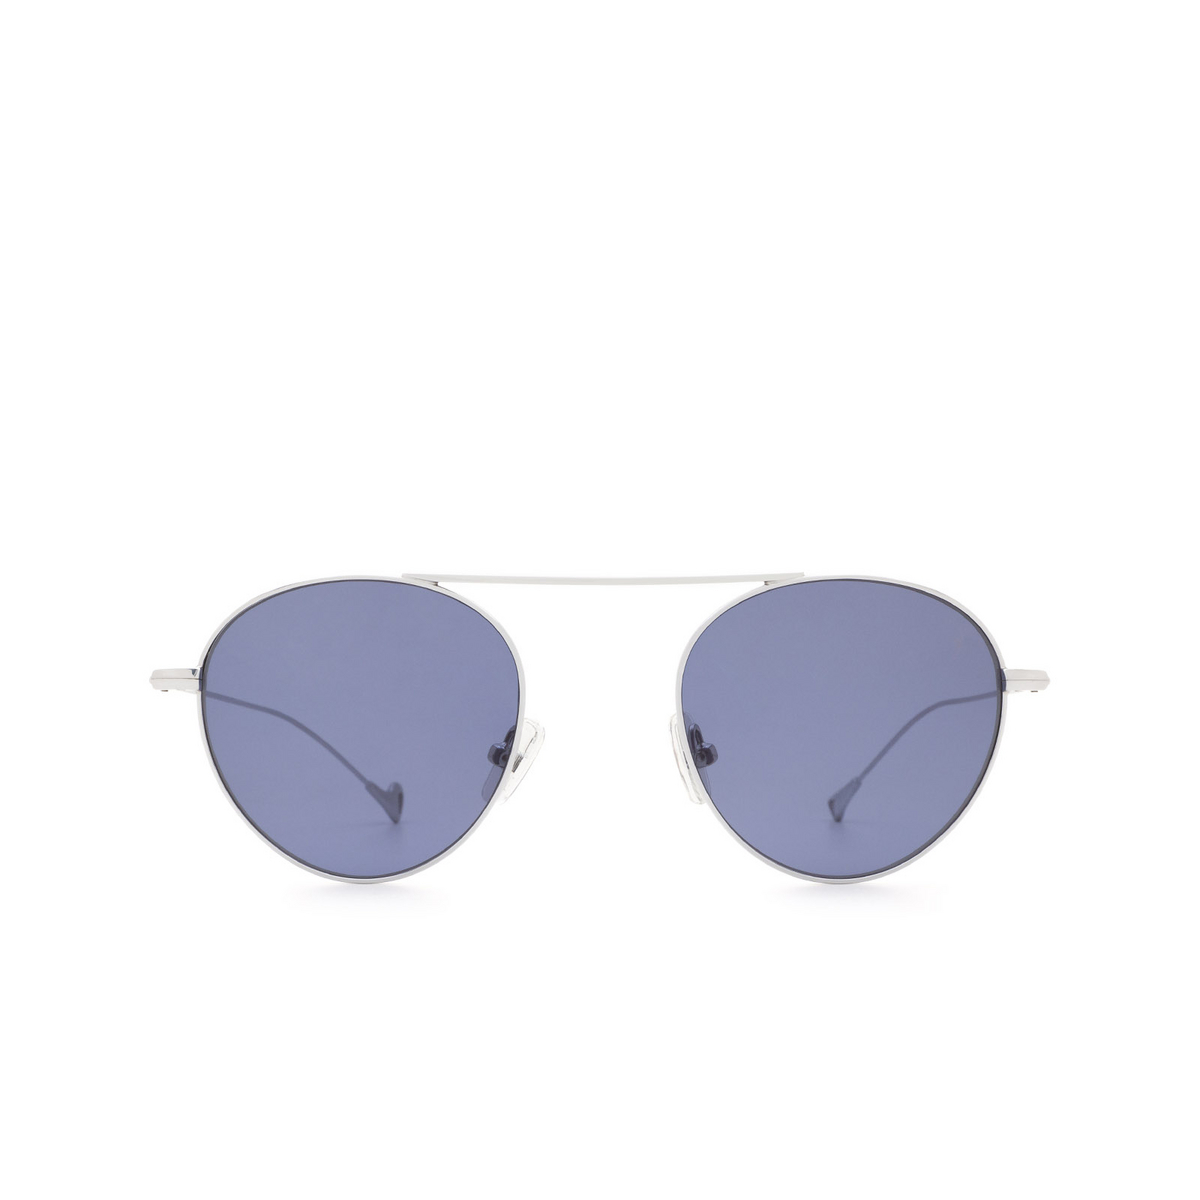 Eyepetizer® Round Sunglasses: En Bossa color Silver C.1-39 - front view.